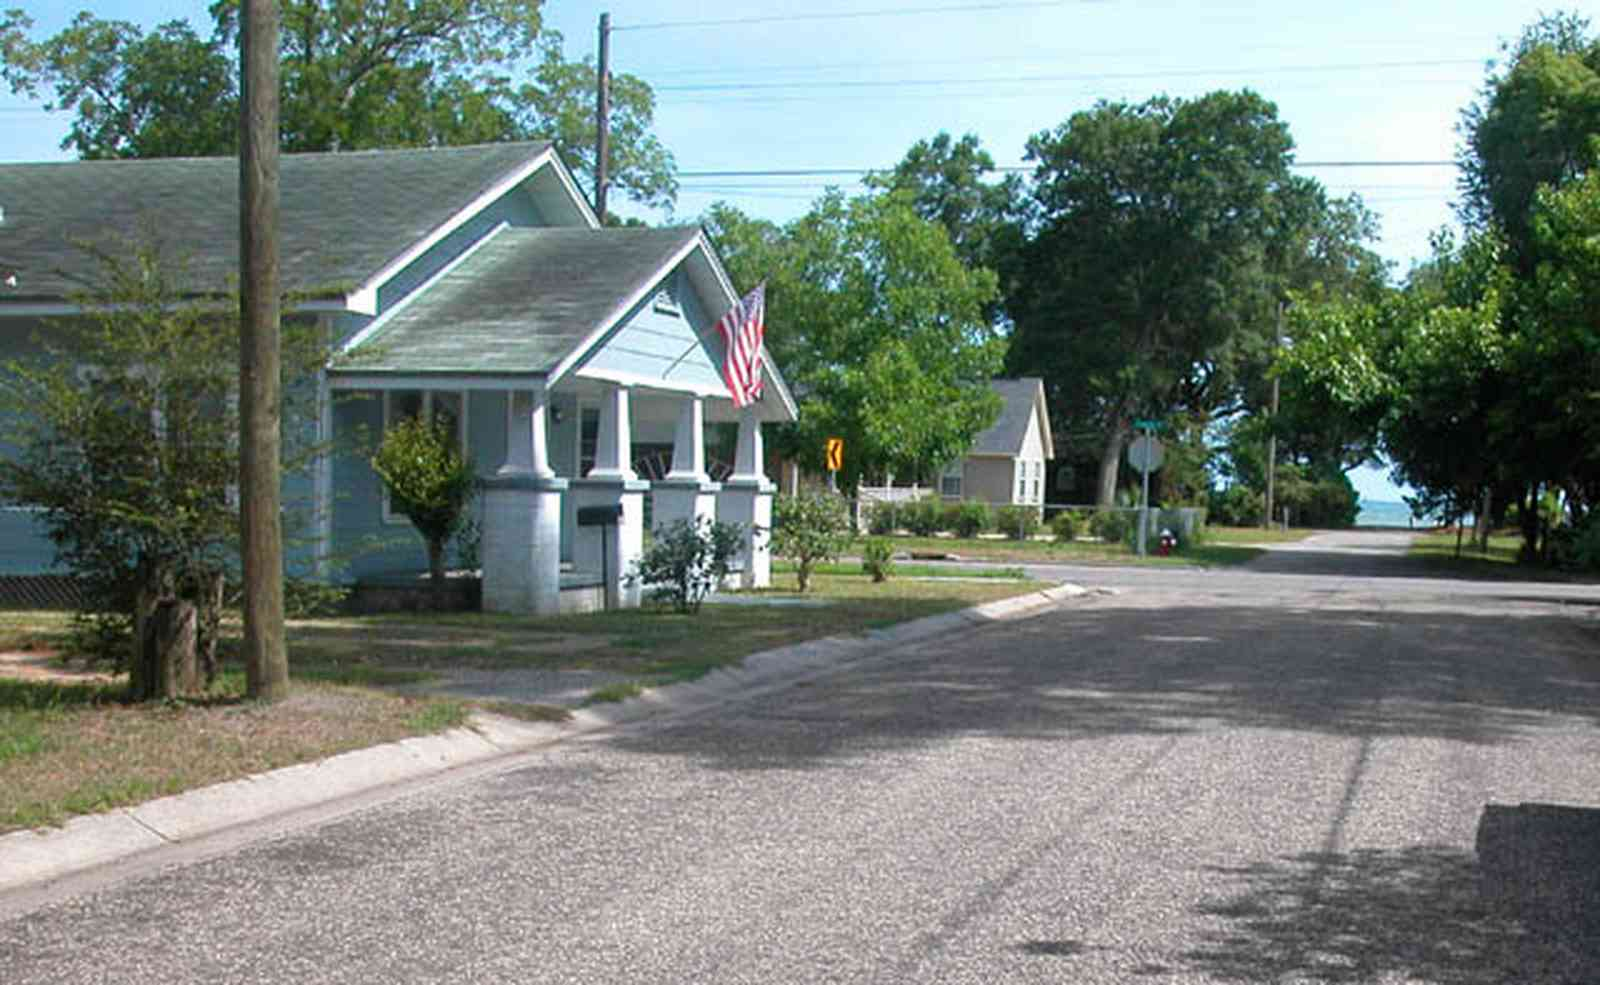 Sanders-Beach:-710-South-F-Street_03.jpg:  craftsman cottage, gulf of mexico, pensacola bay, american flag, quiet neighborhood, oak tree